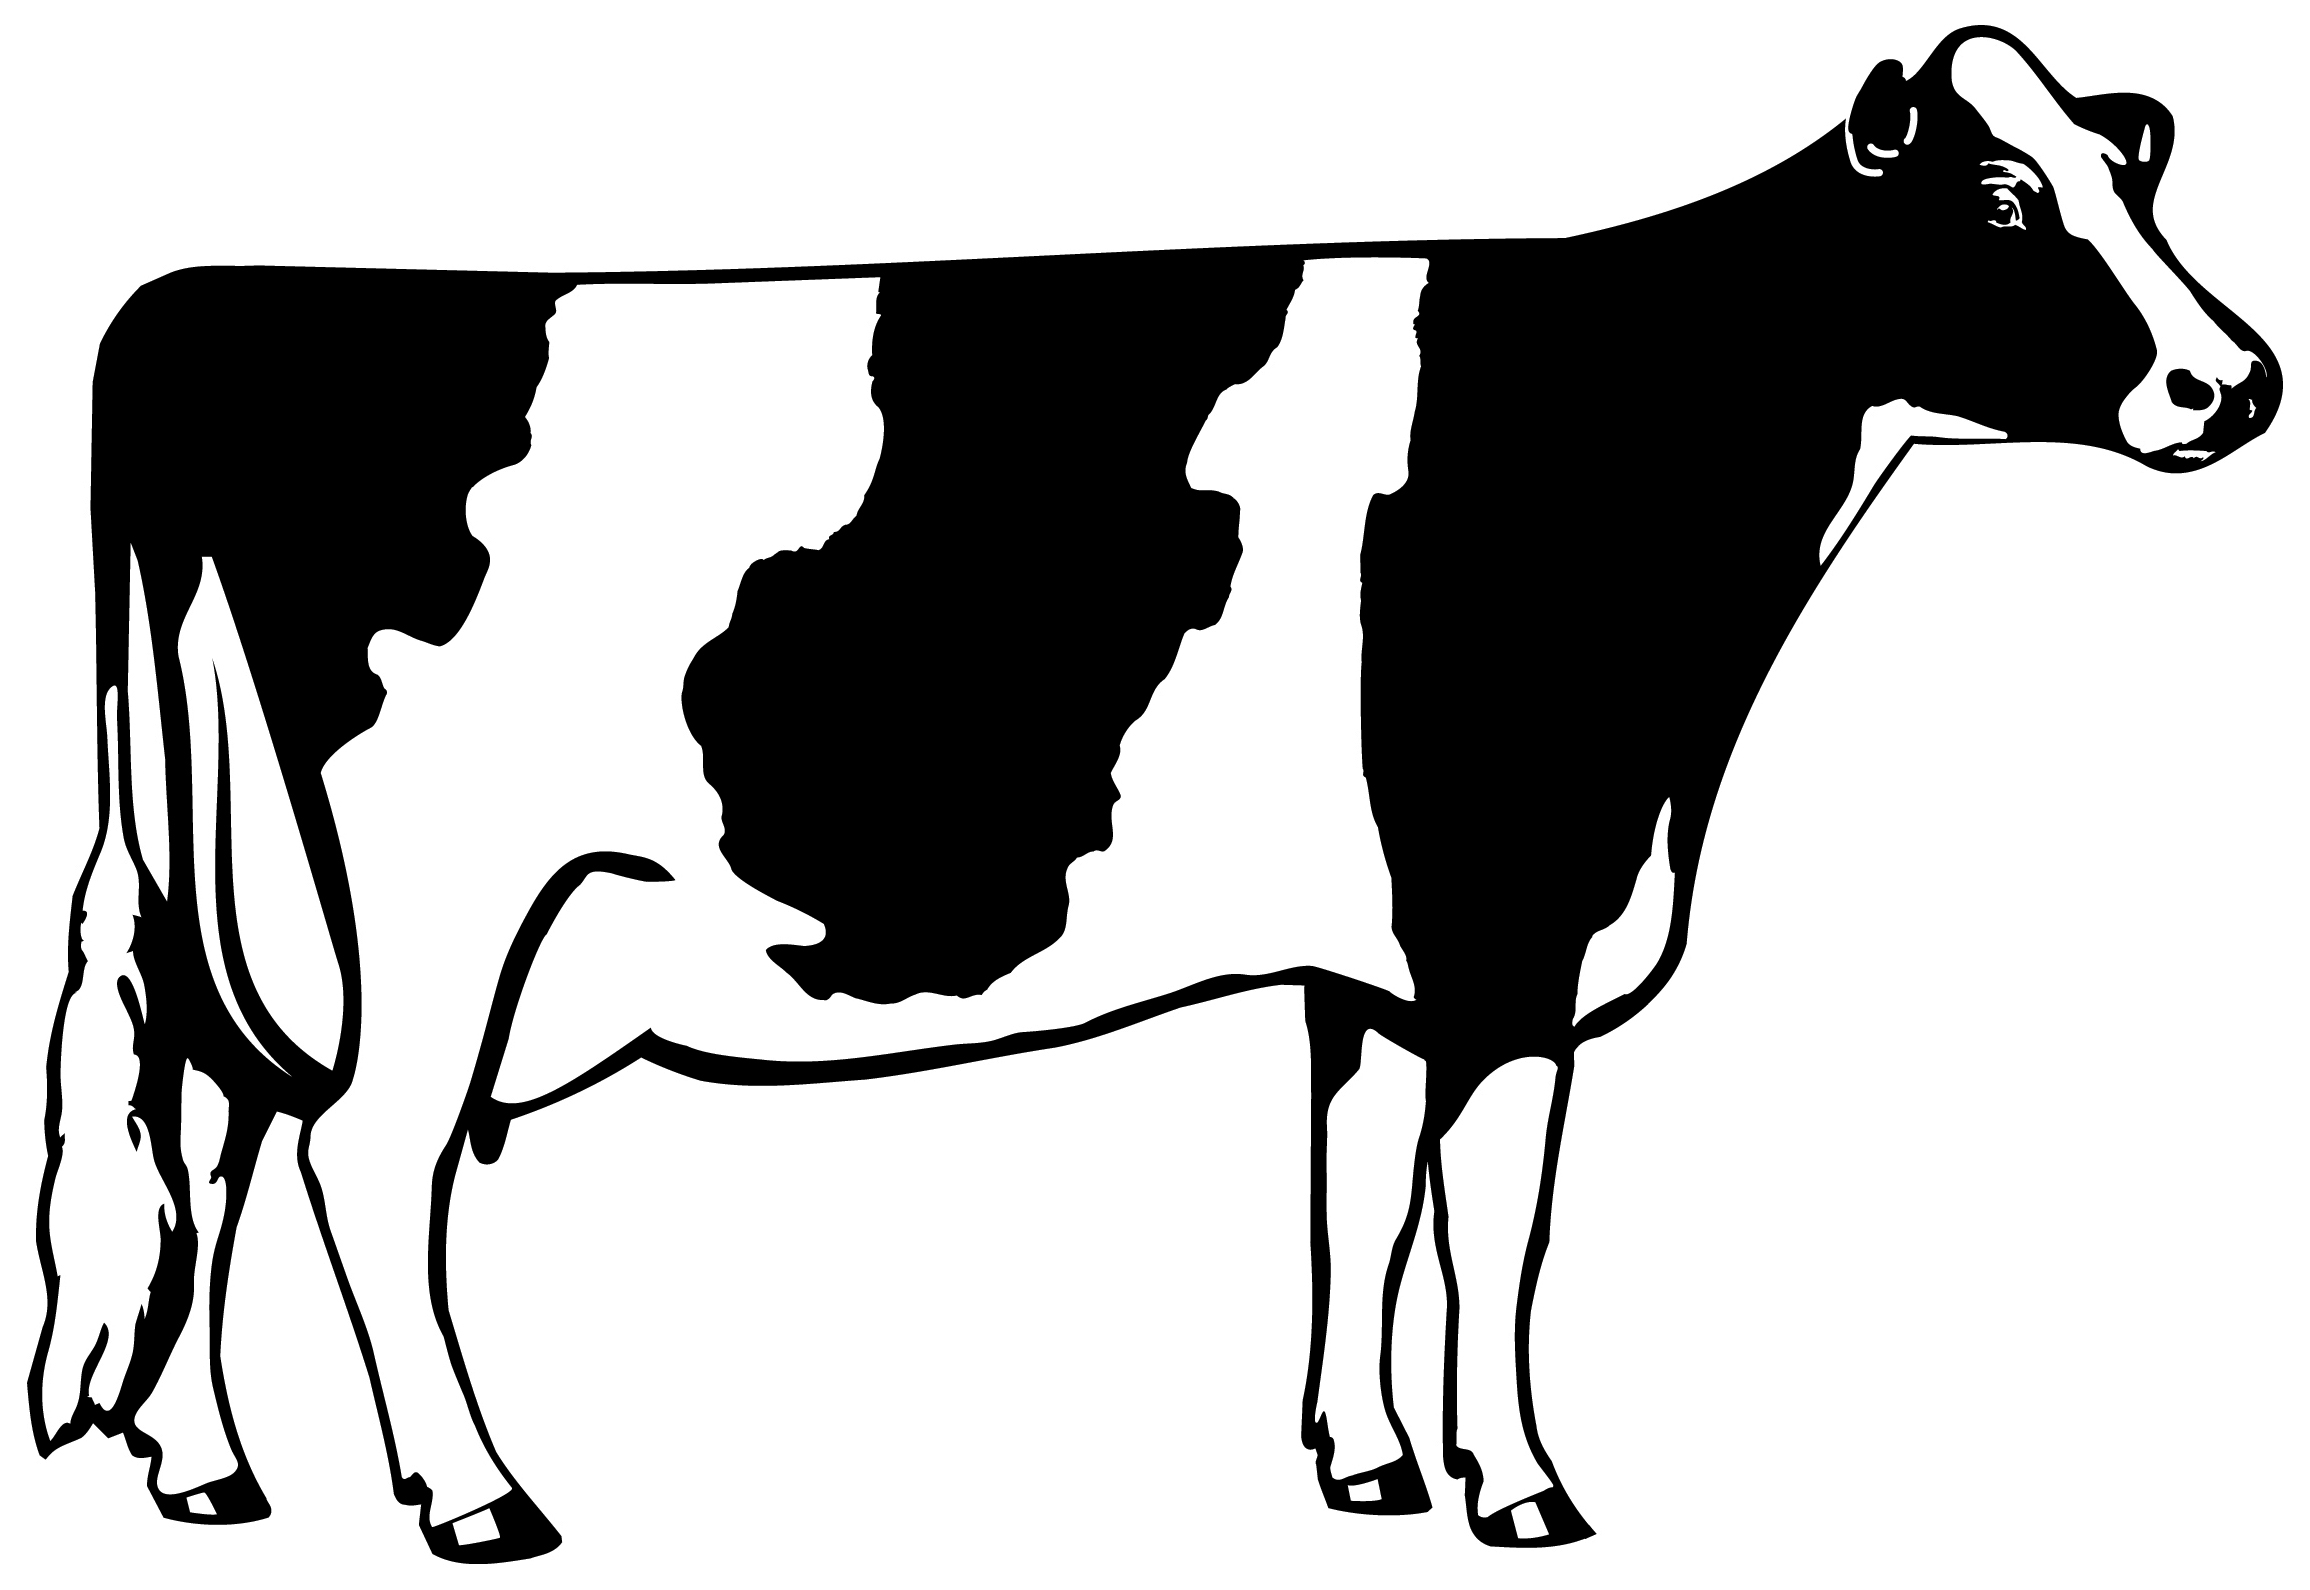 cattle silhouette clip art at getdrawings com free for personal rh getdrawings com cattle clip art free images cattle clip art free